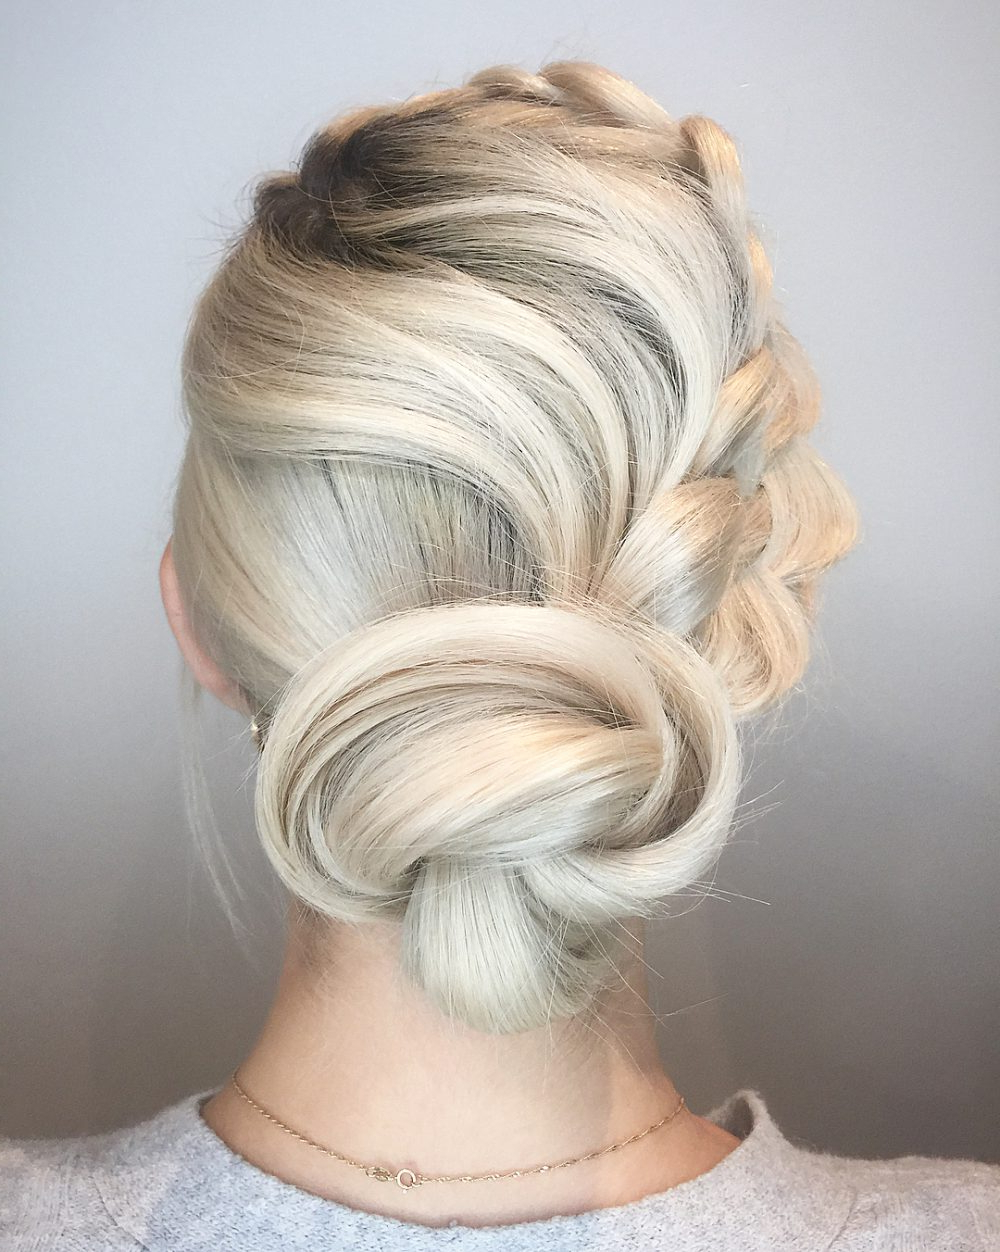 34 Cutest Prom Updos For 2019 – Easy Updo Hairstyles Regarding Well Known Fancy Knot Prom Hairstyles (View 5 of 20)